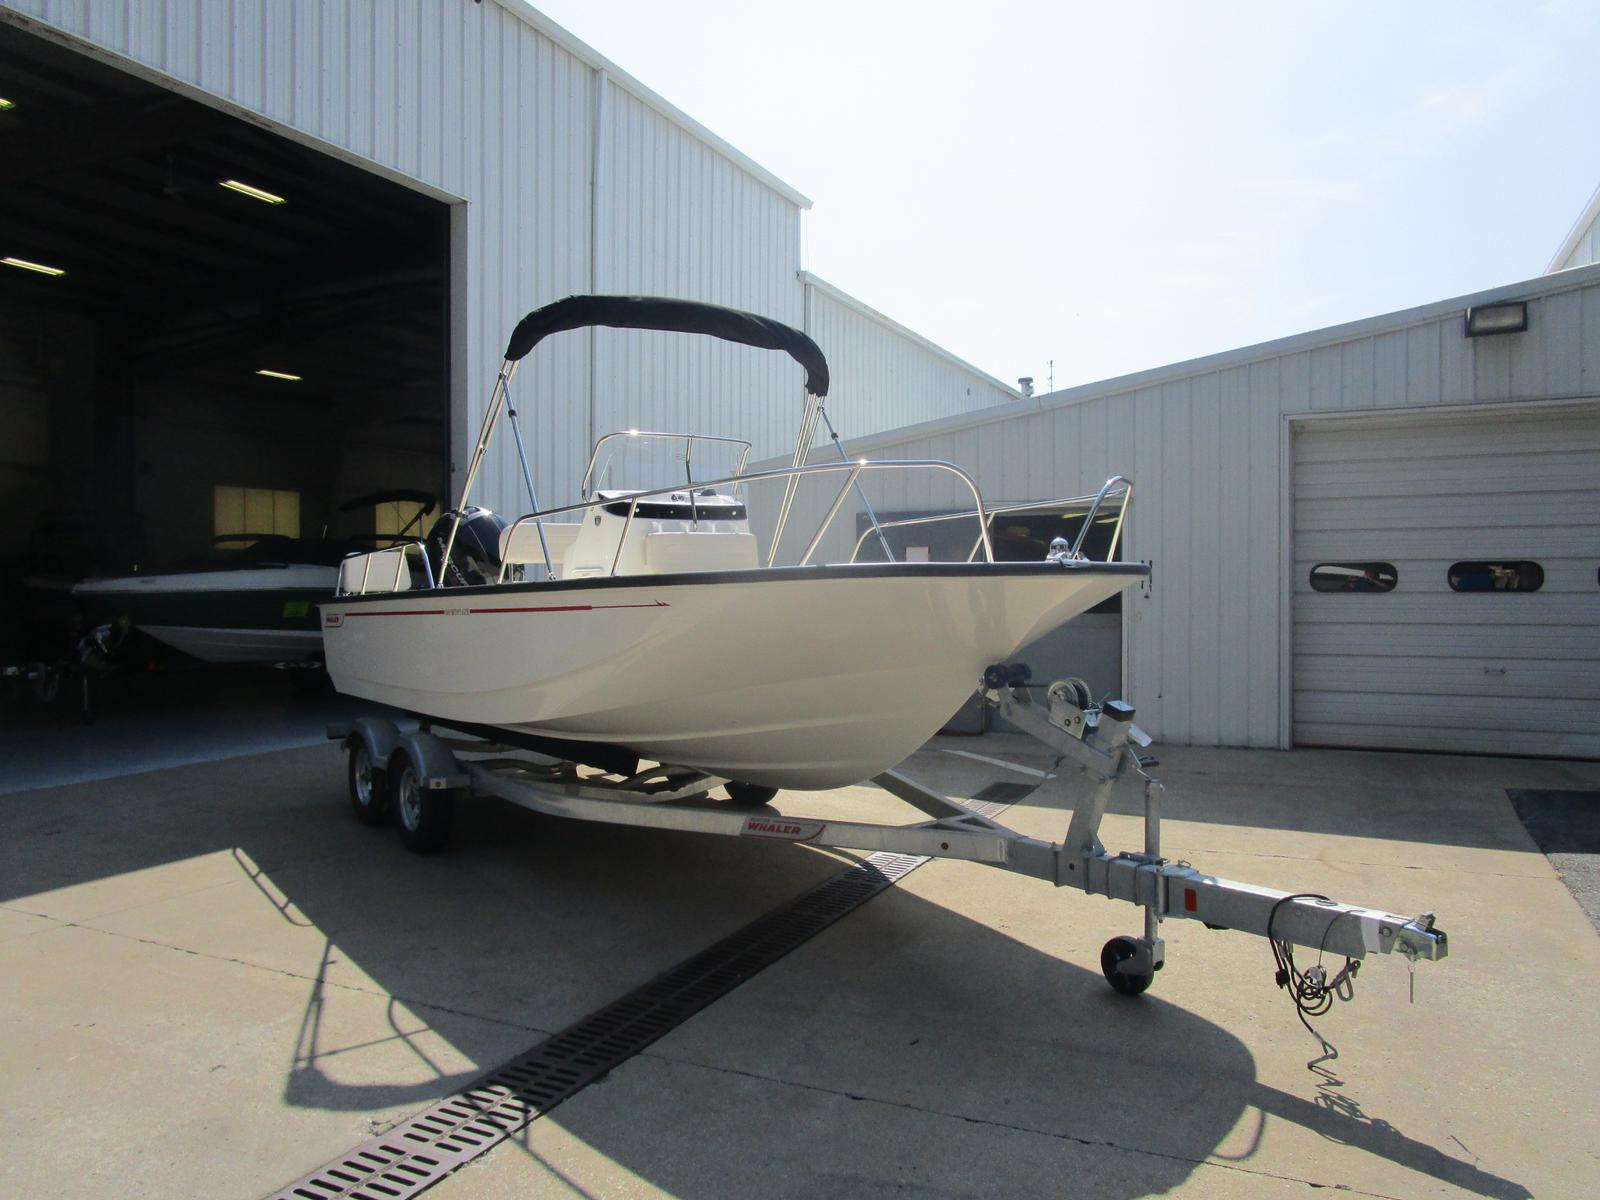 2018 Boston Whaler boat for sale, model of the boat is 190 Montauk & Image # 2 of 5